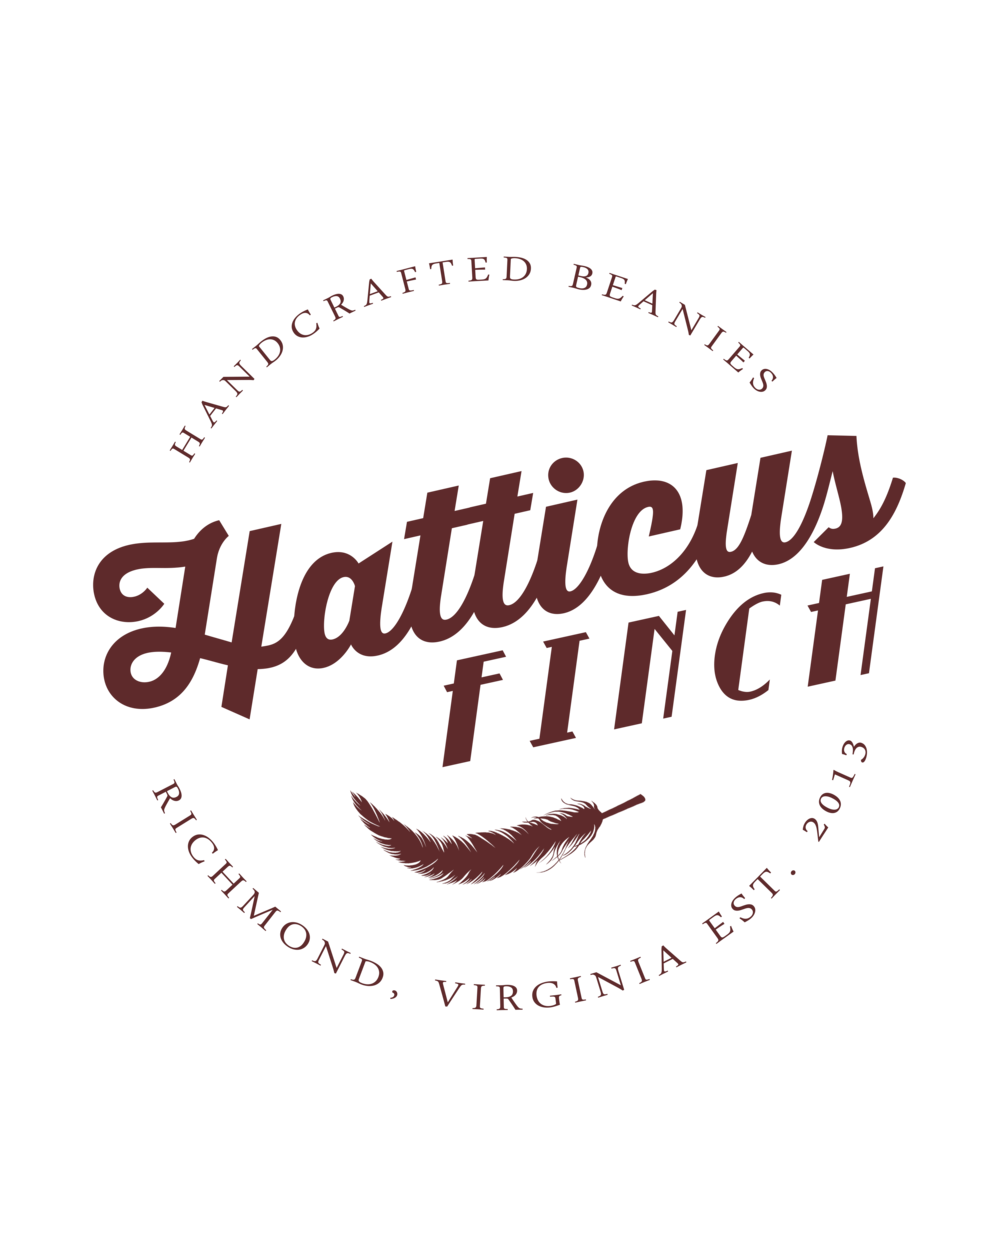 hatticus-finch-logo-badge-brown.png